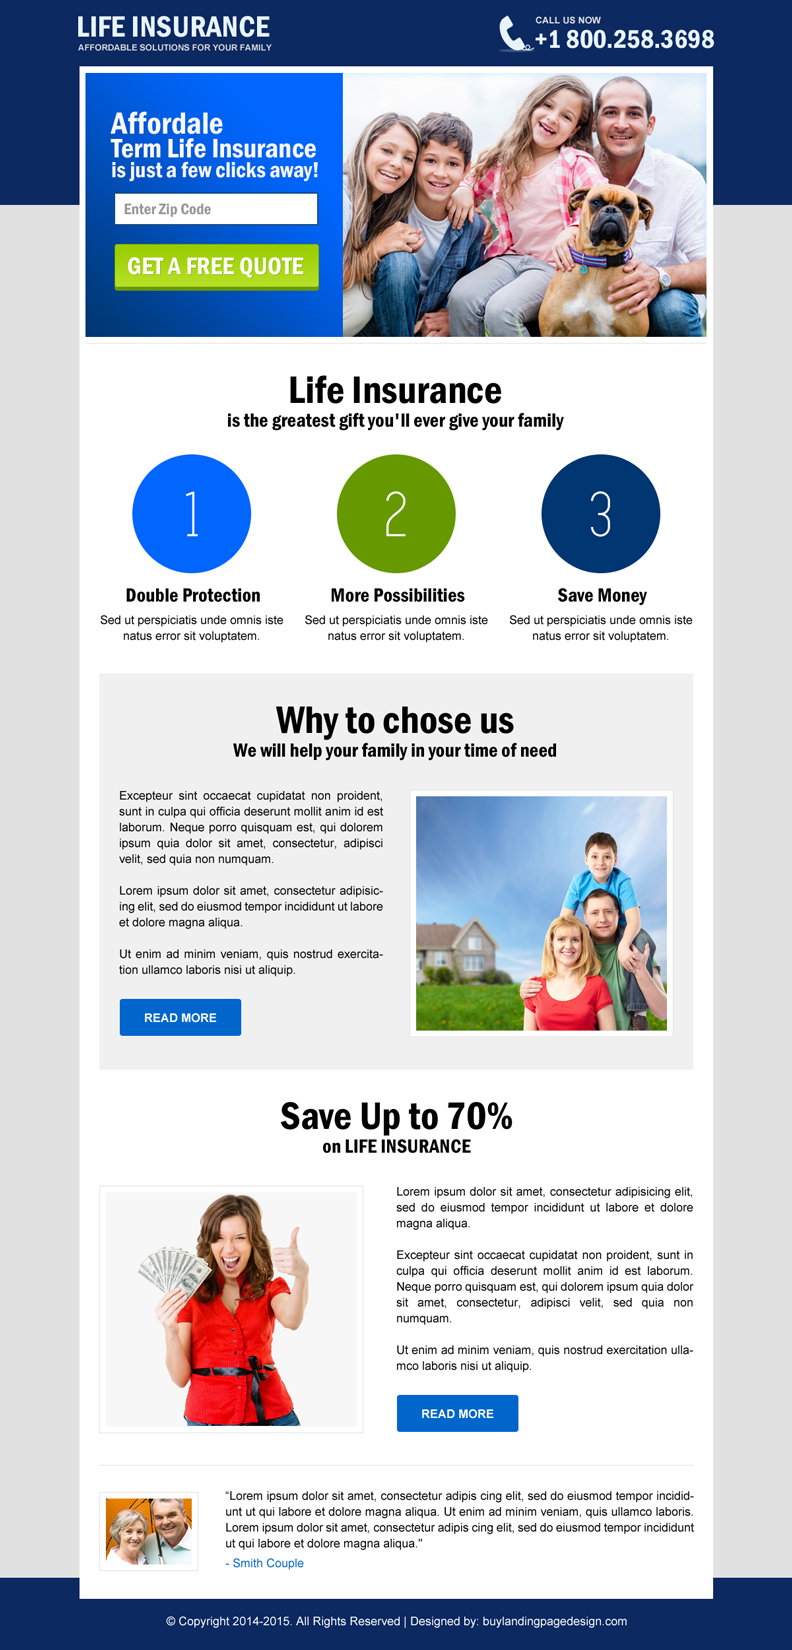 get-life-insurance-quote-for-free-by-entering-zip-code-landing-page-design-template-017